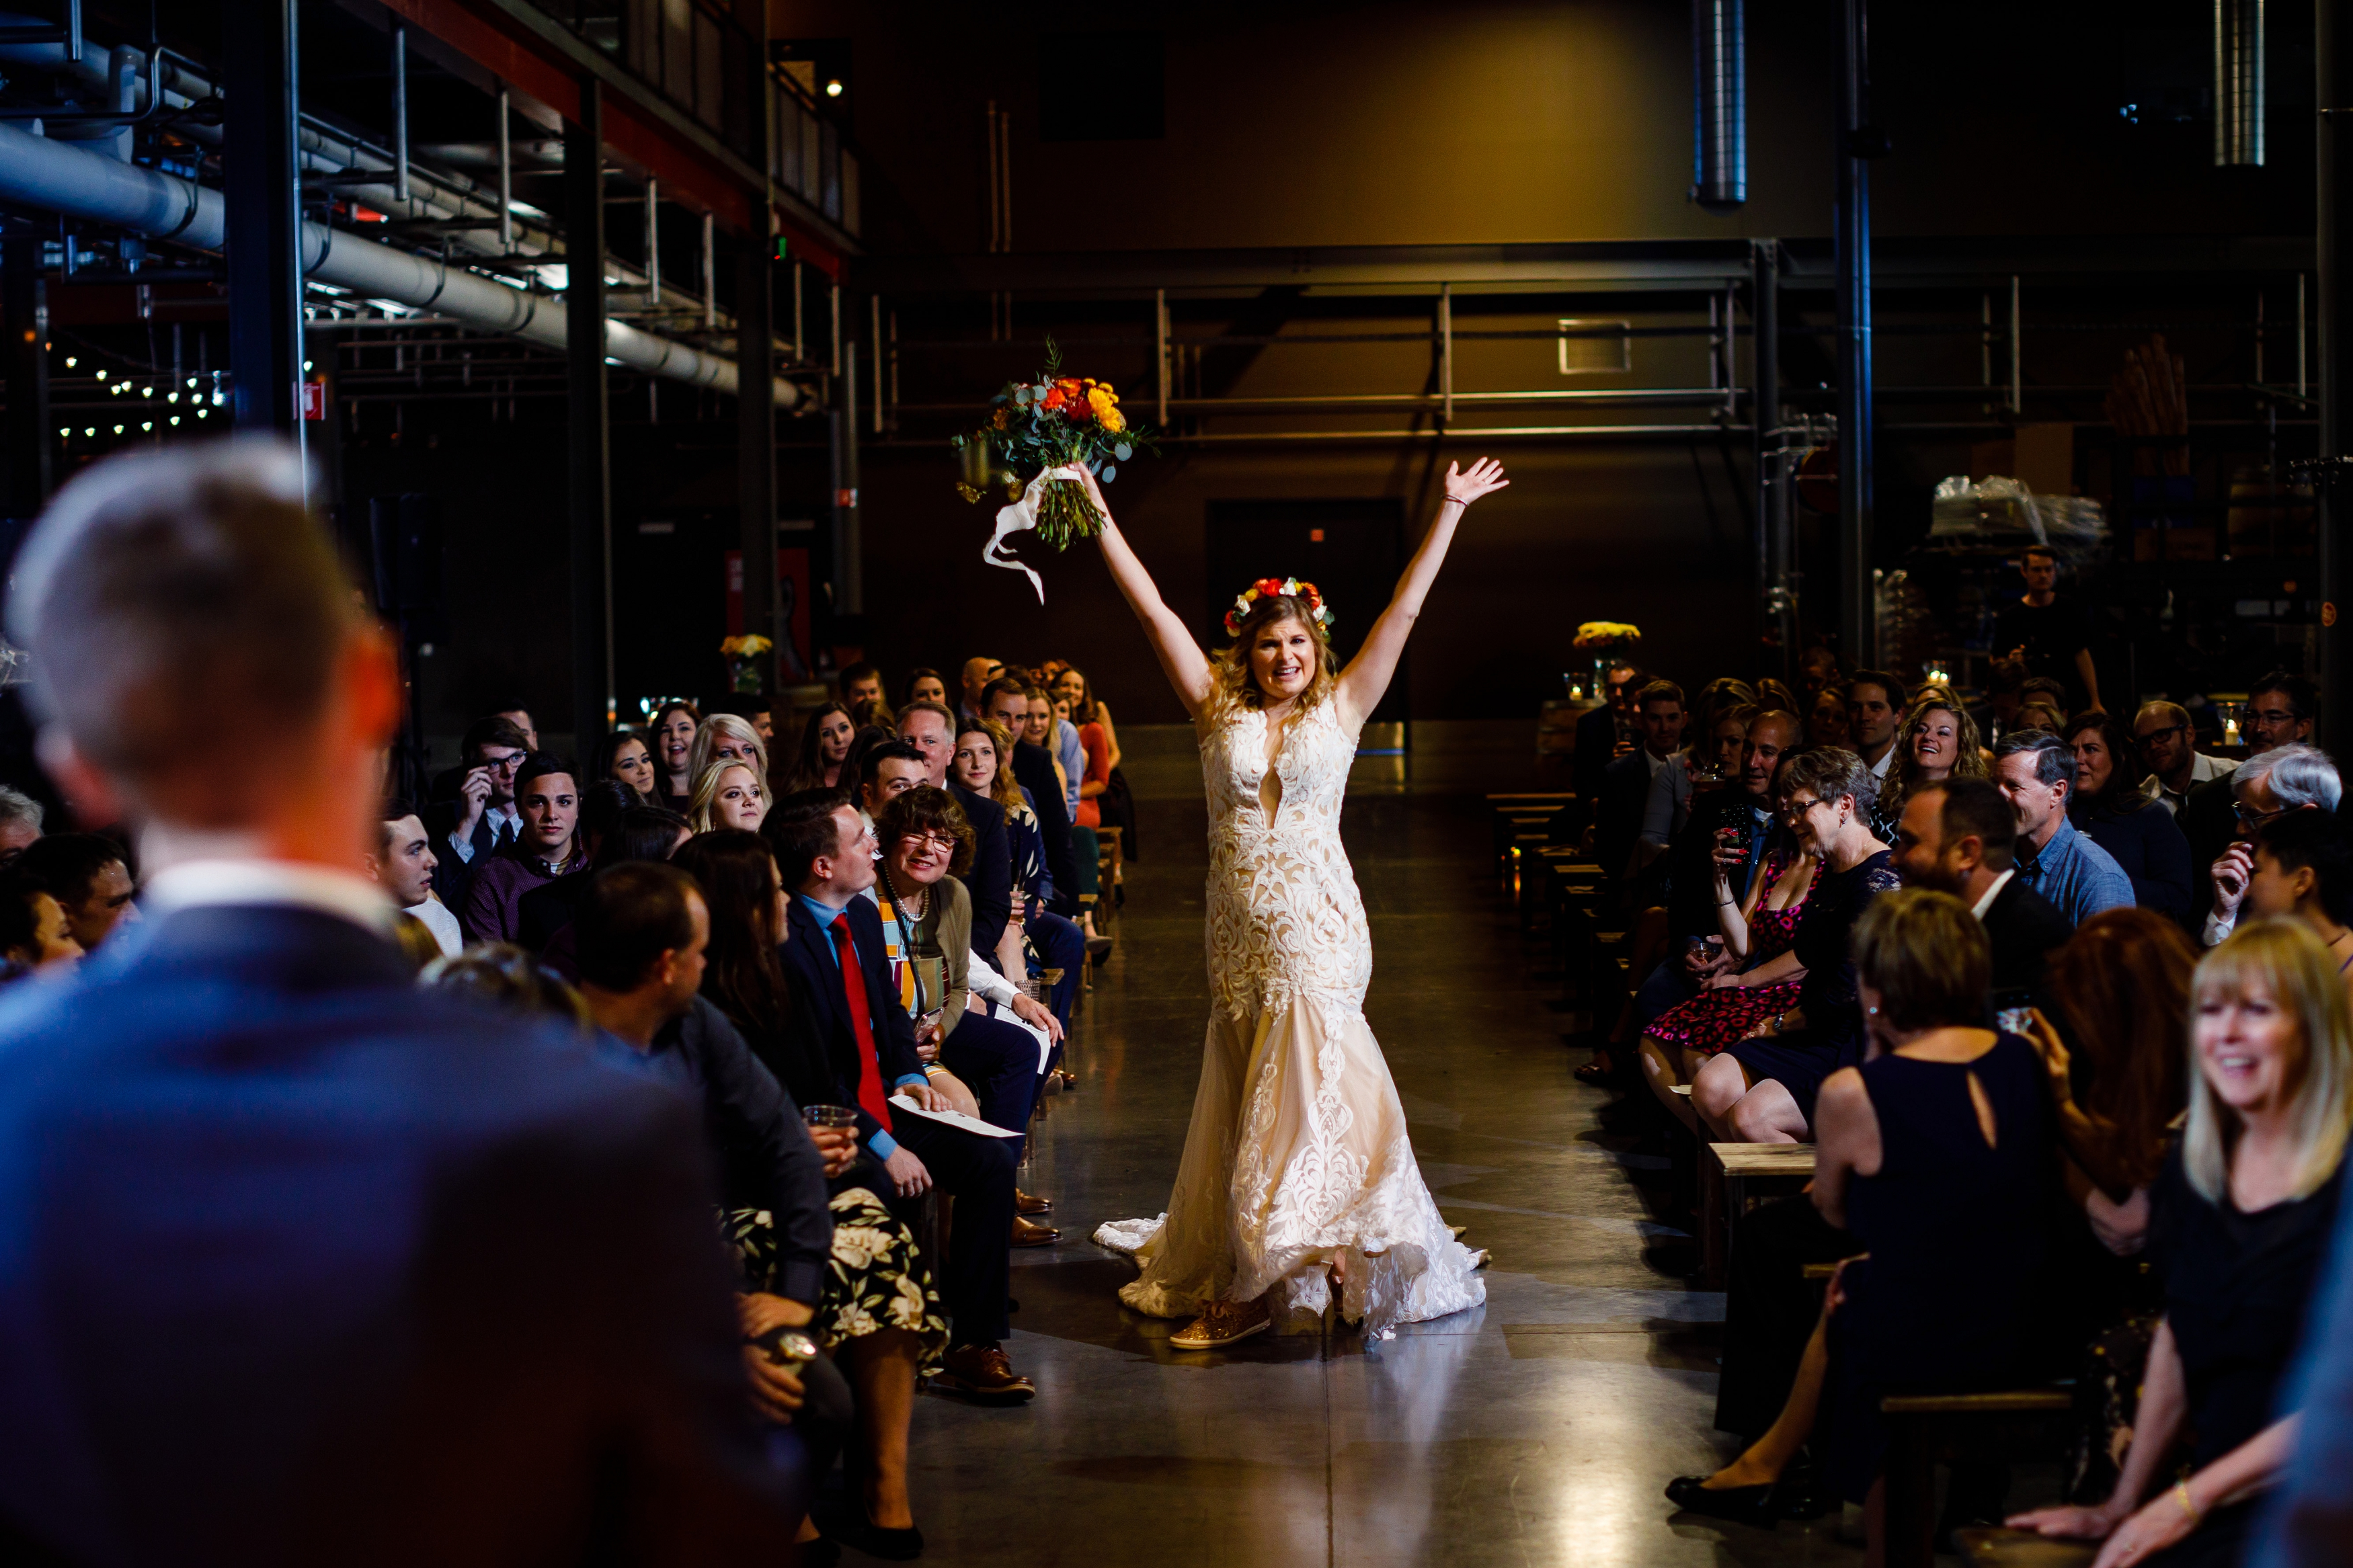 Jessica dancing down the isle before her & Jake's wedding ceremony at the Great Divide Barrel Bar.